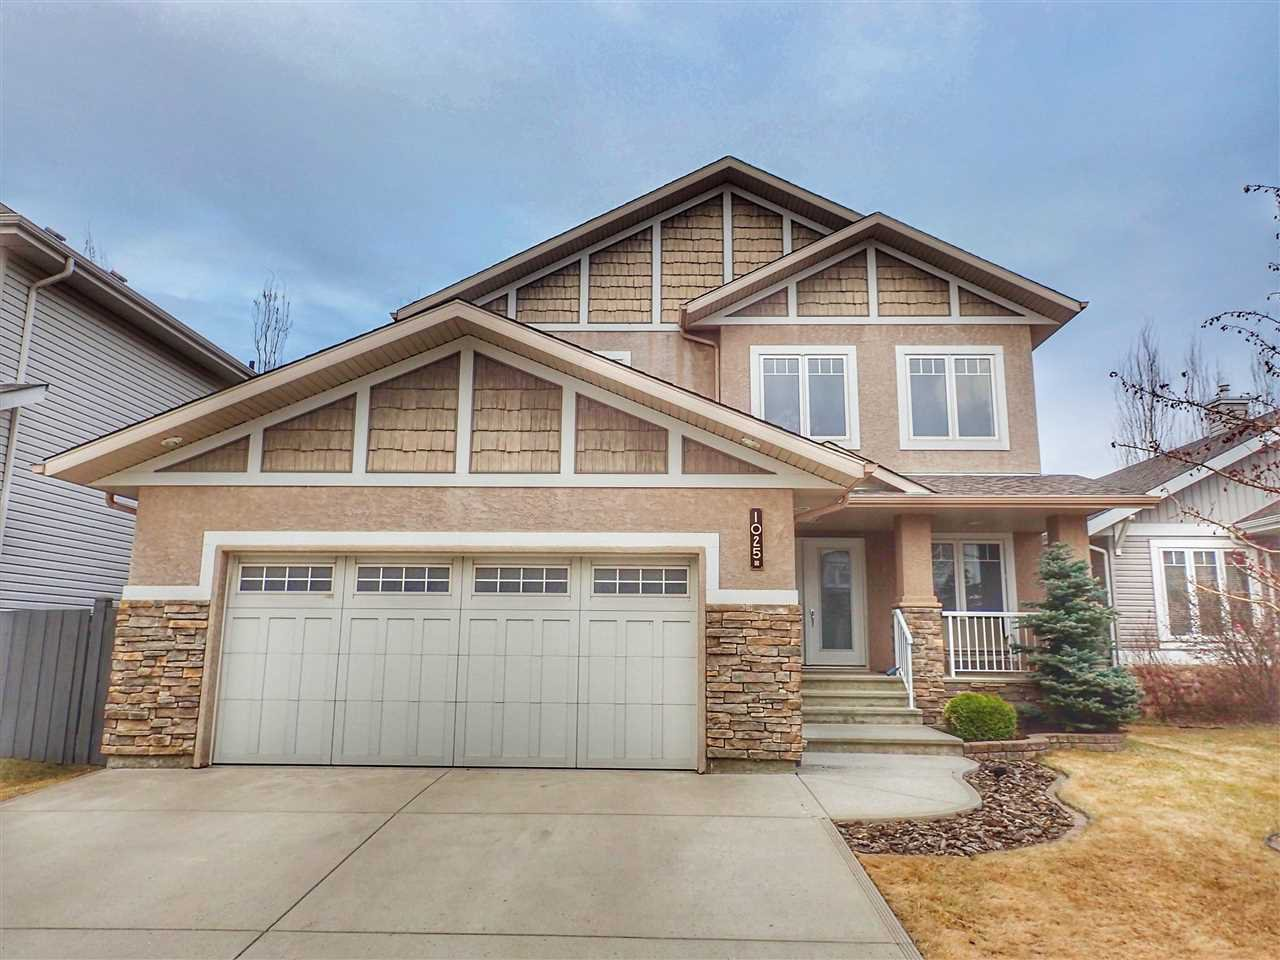 Main Photo: 1025 Hope Road in Edmonton: Zone 58 House for sale : MLS®# E4193936